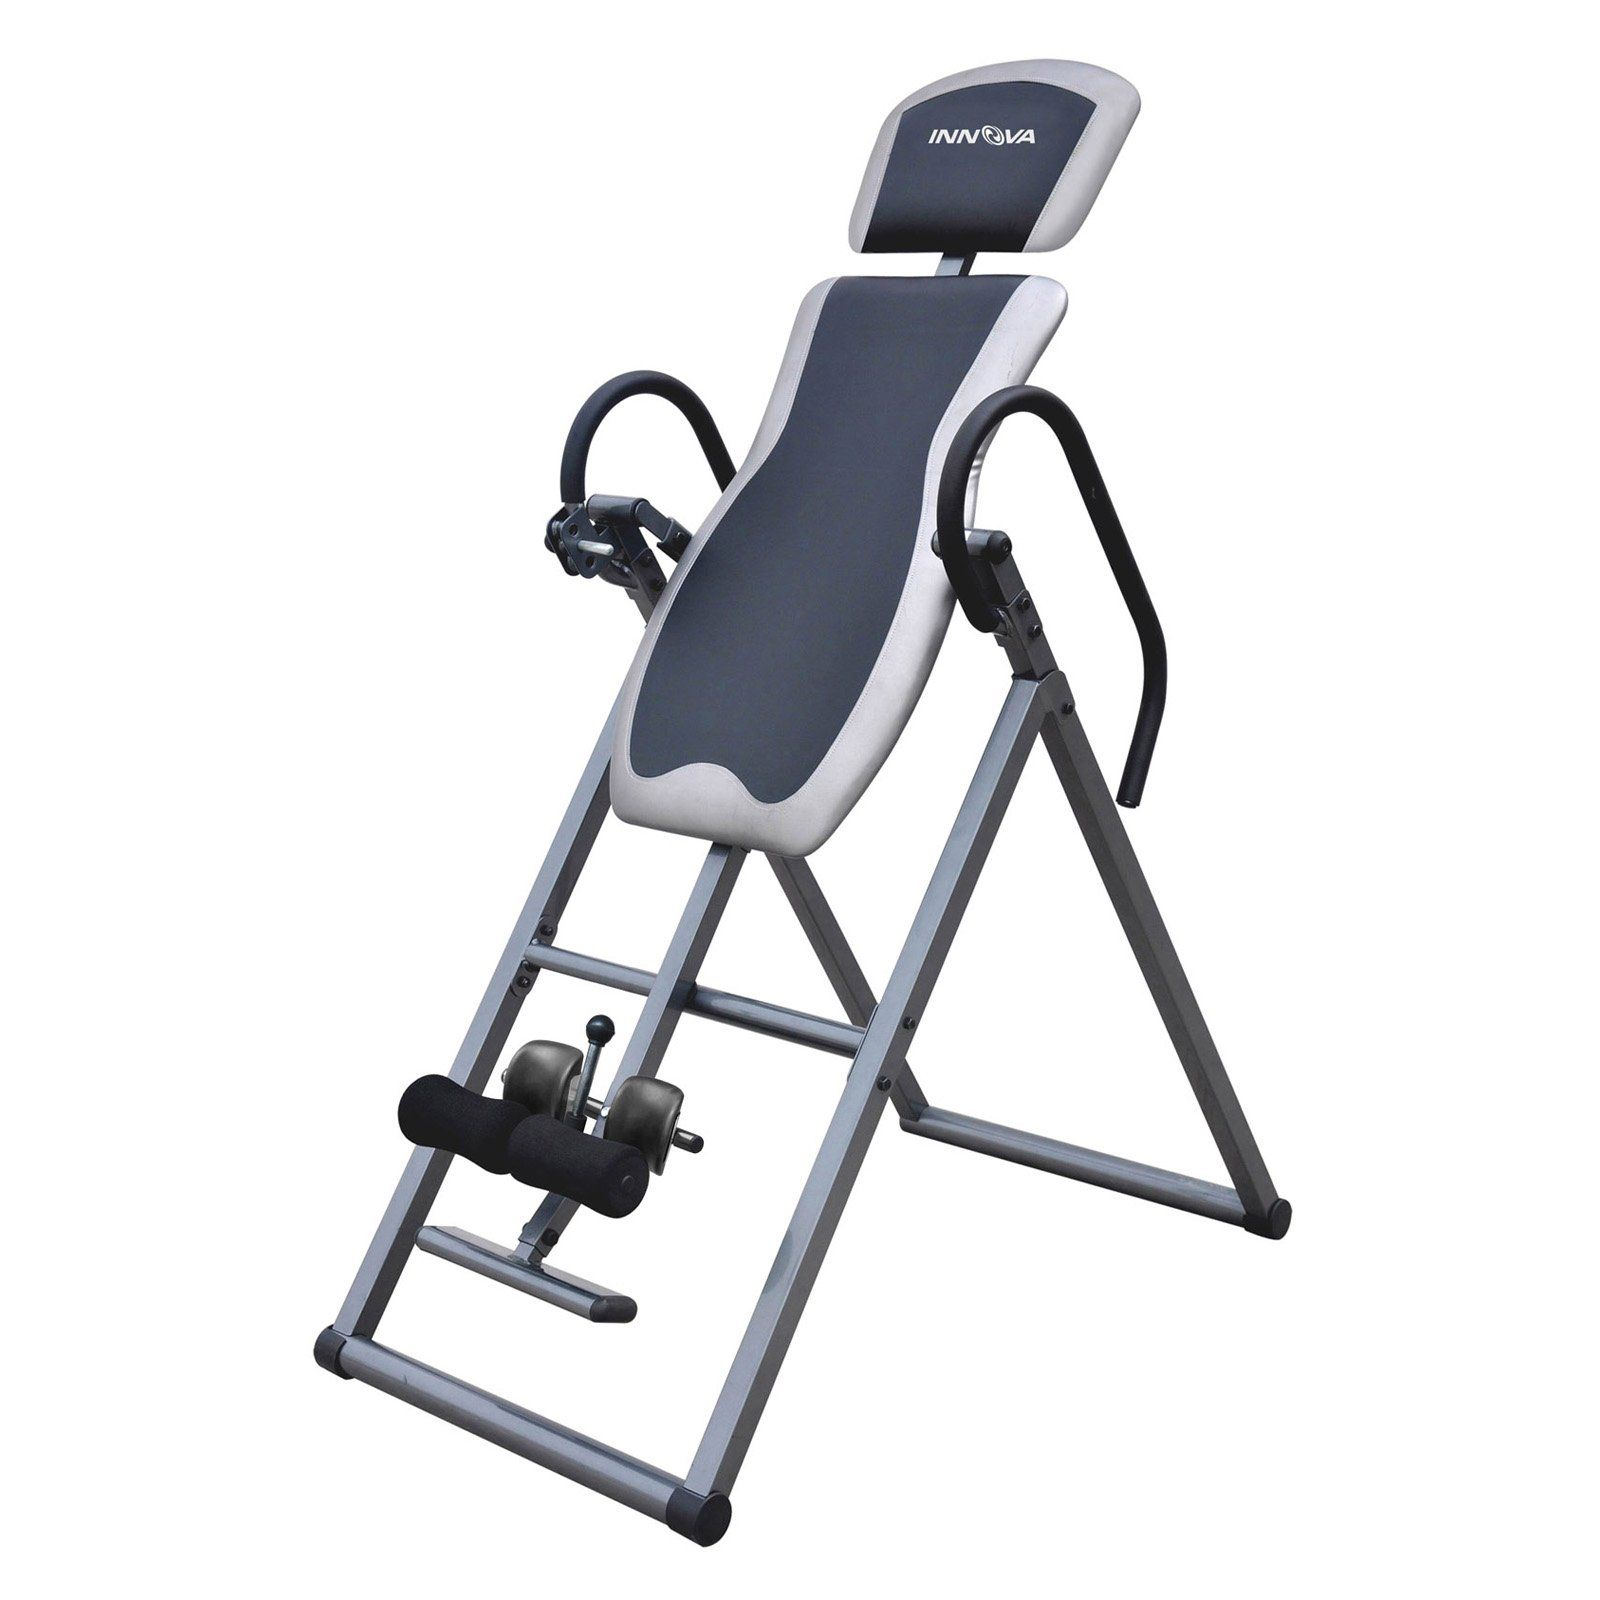 Inversion tables have the ability to assist with